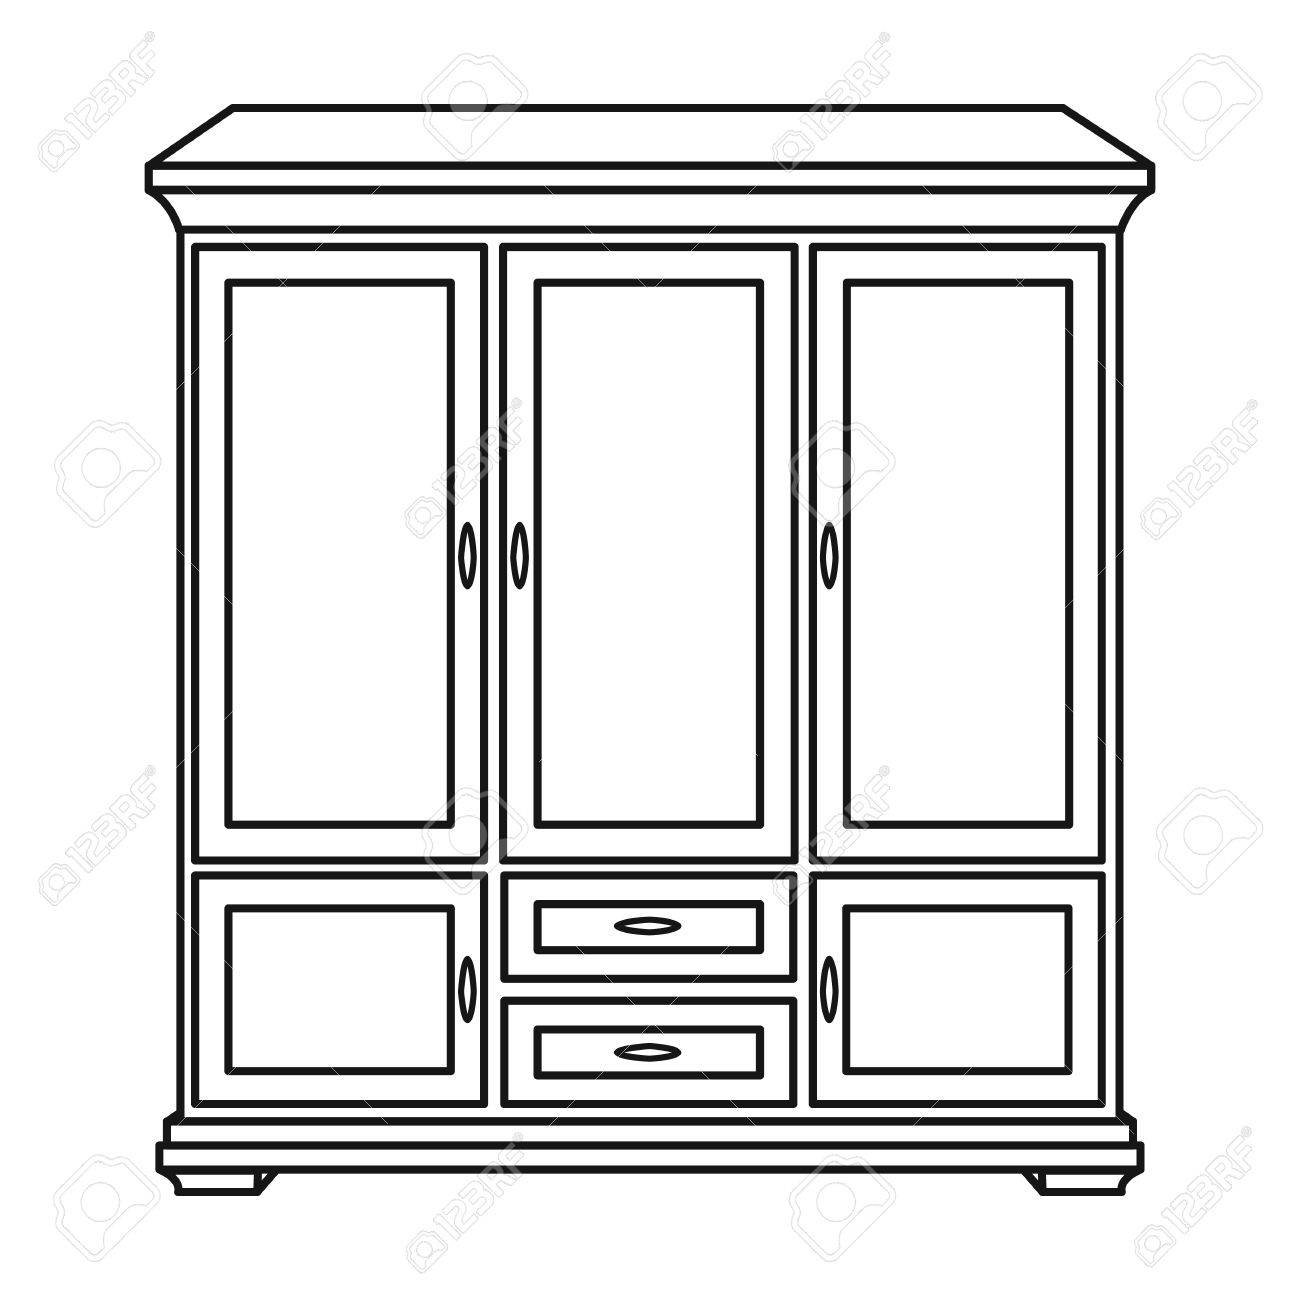 Wardrobe clipart black and white  Classical Cupboard Icon In Outline Style Isolated On White ...